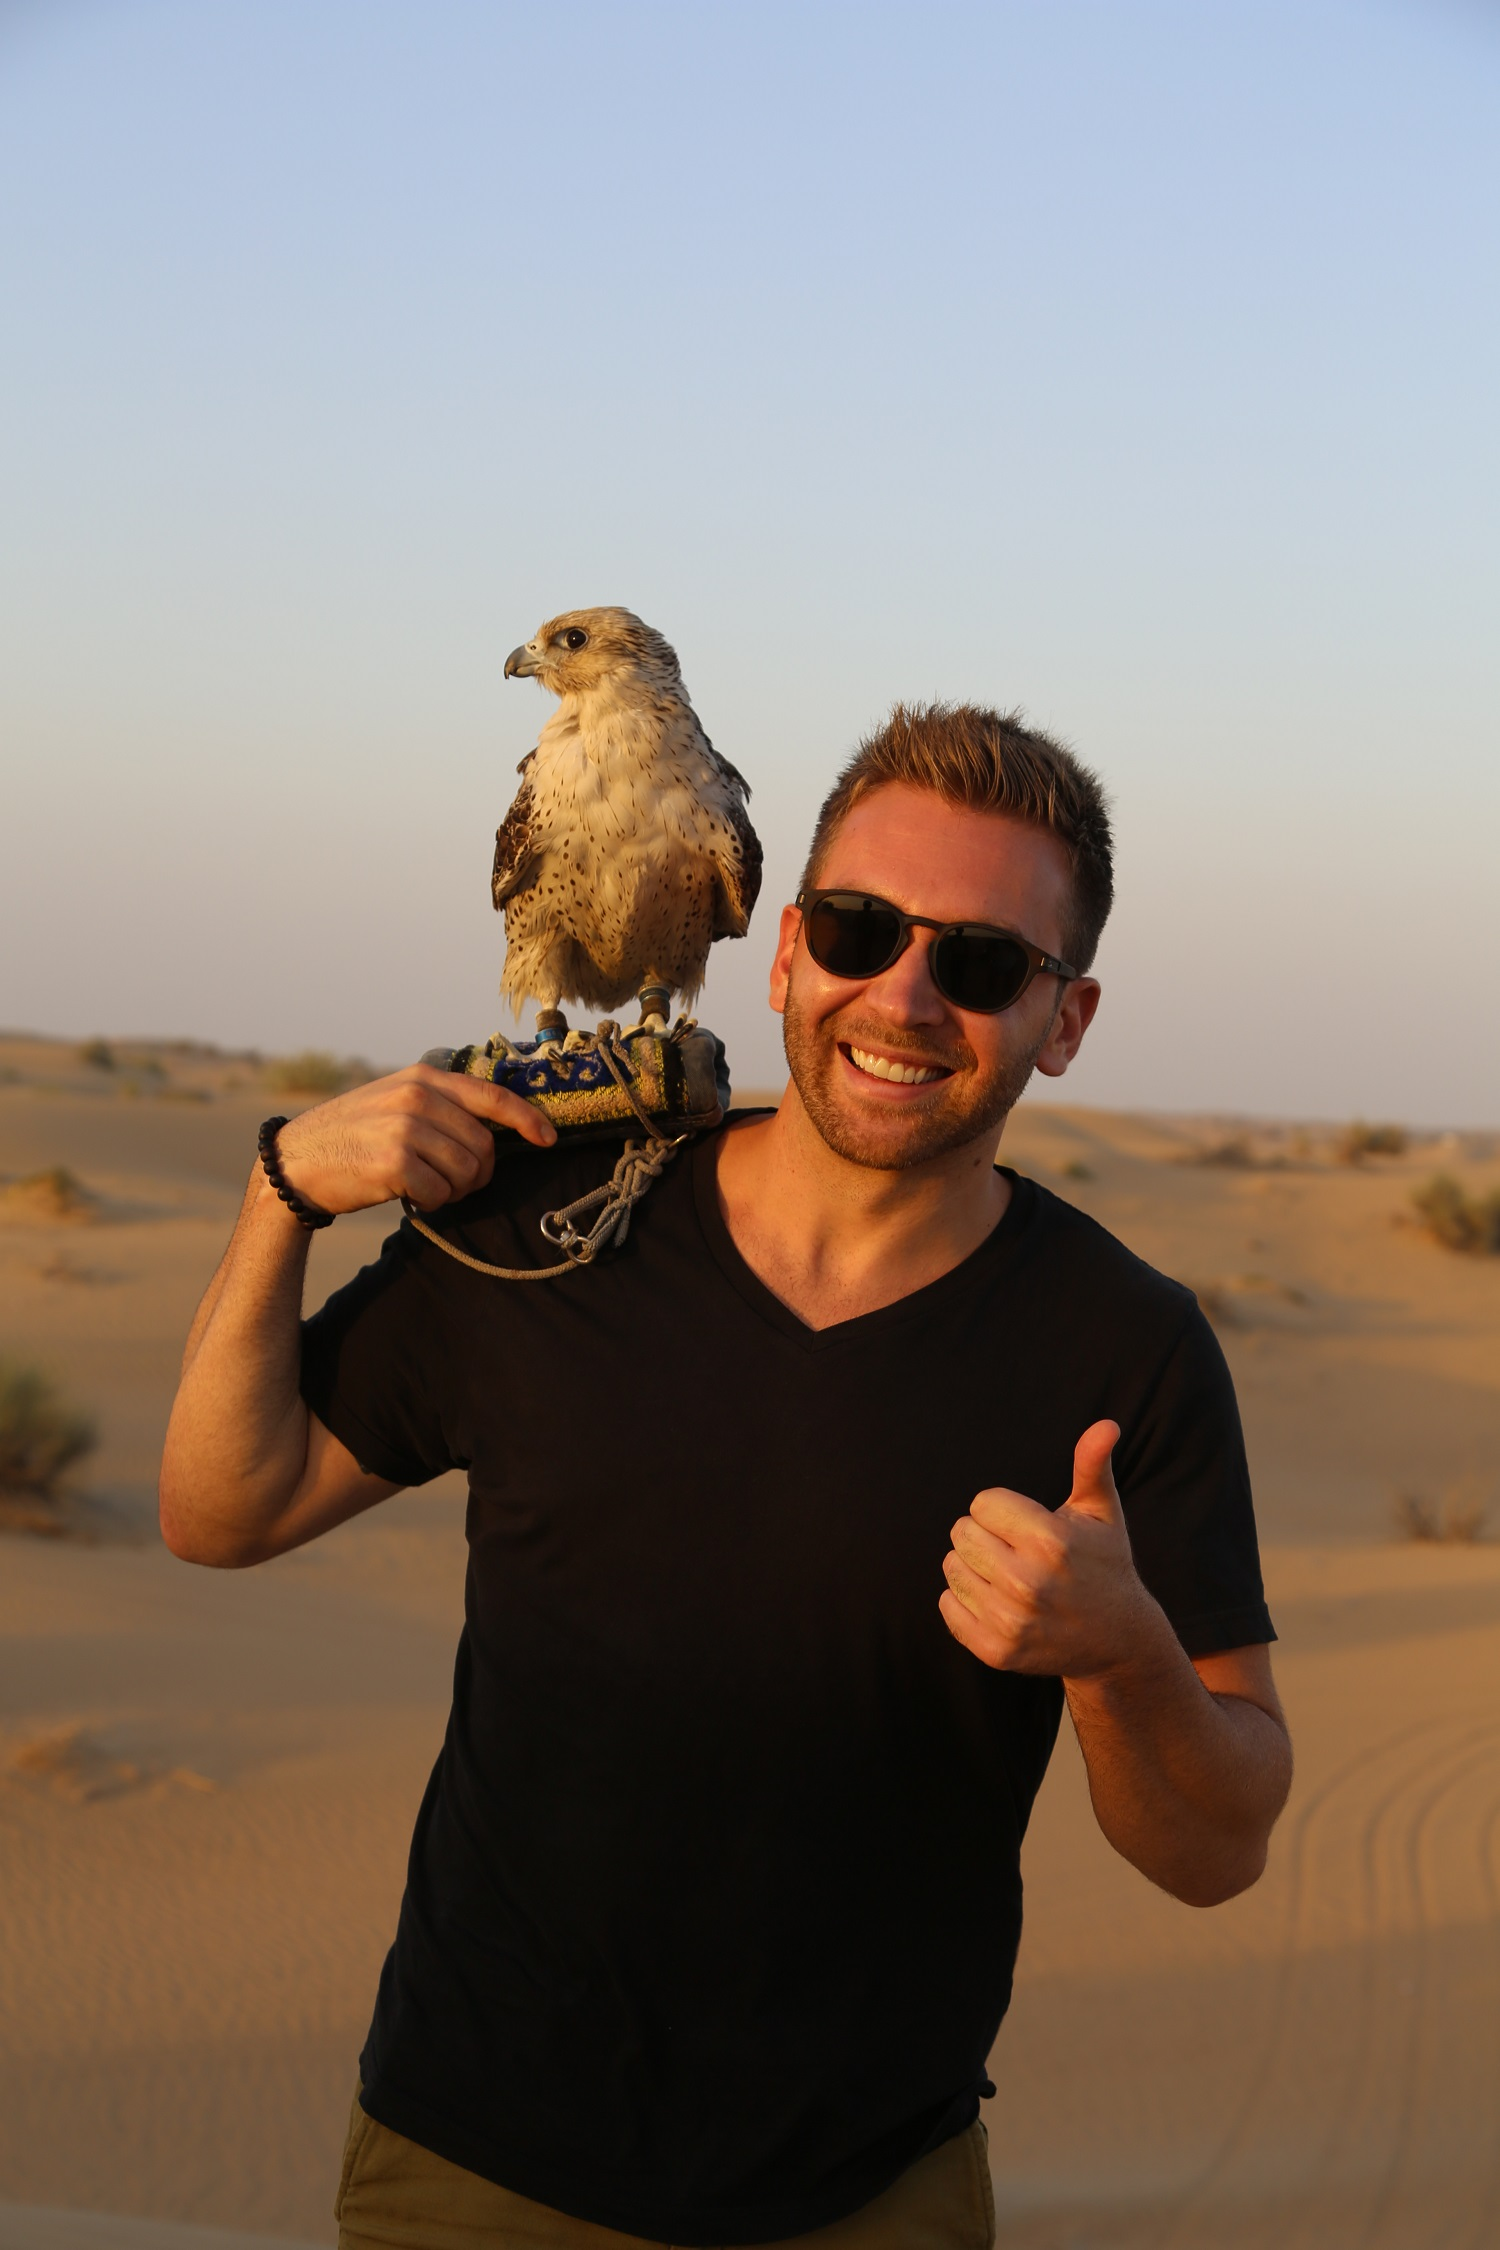 holding a falcon on my desert Safari Dubai